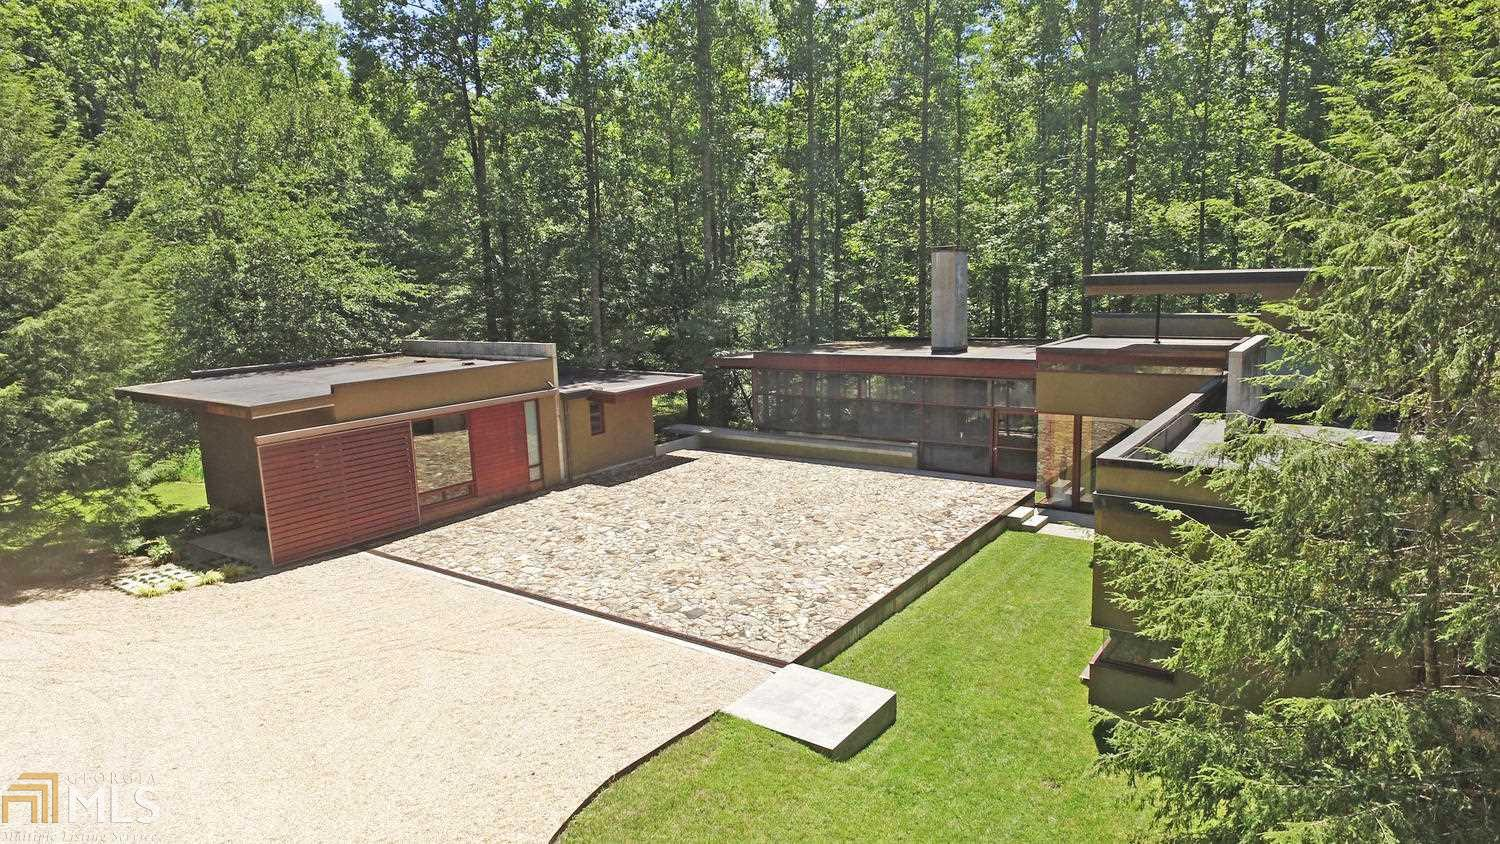 rabun gap hindu singles Get details of 10 barkers creek lane your dream home in rabun gap, 30568 and view its photos, videos, amenities and local information.